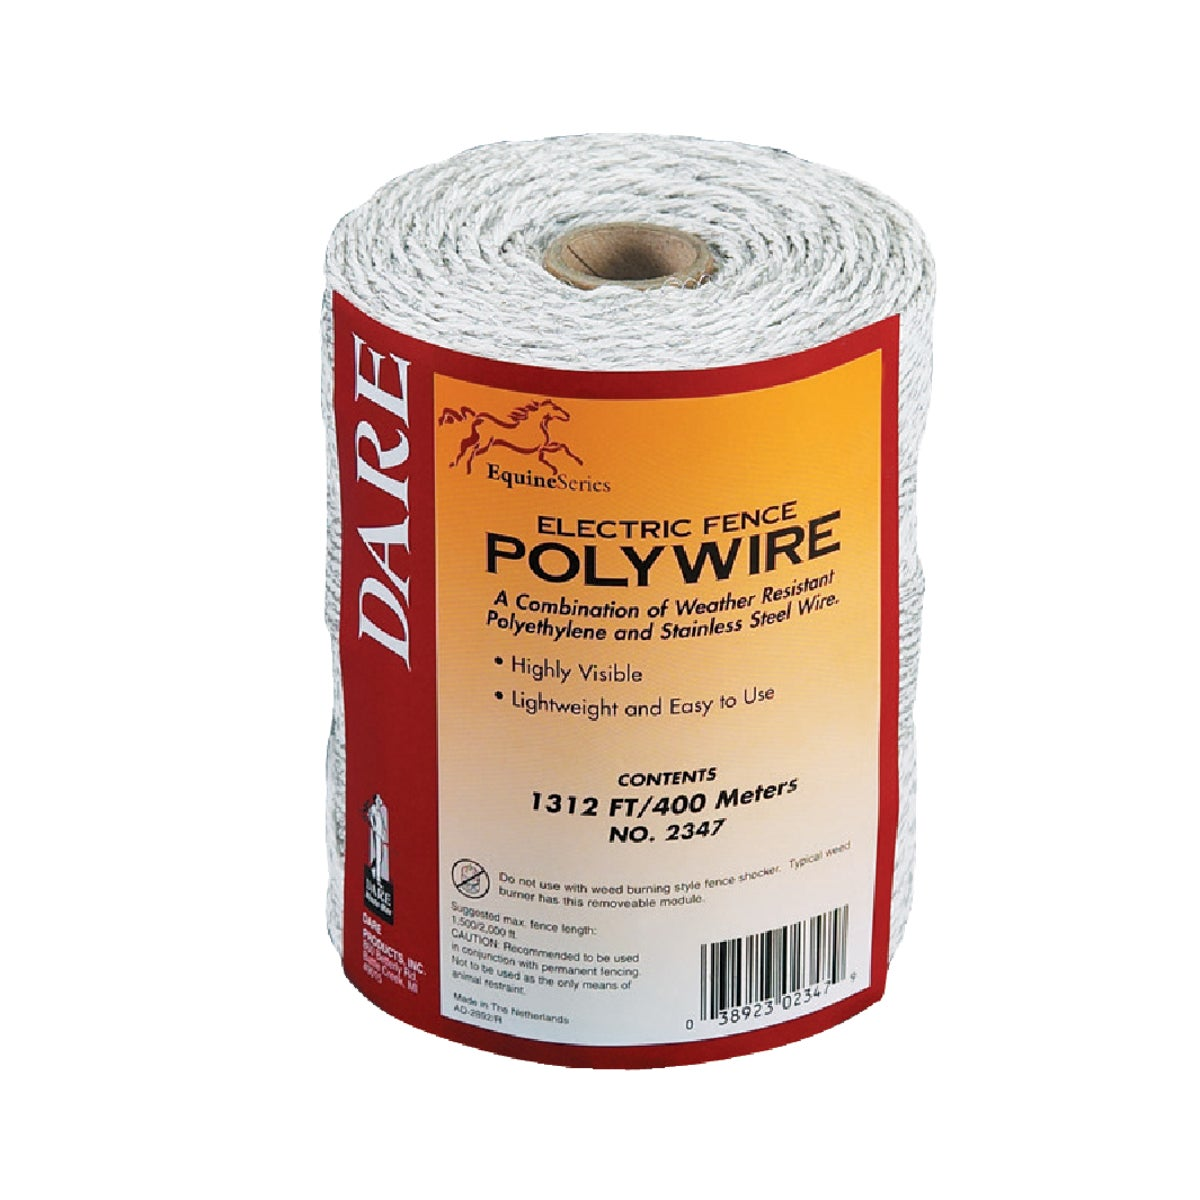 400M STAINLESS POLYWIRE - 2347 by Dare Products Inc